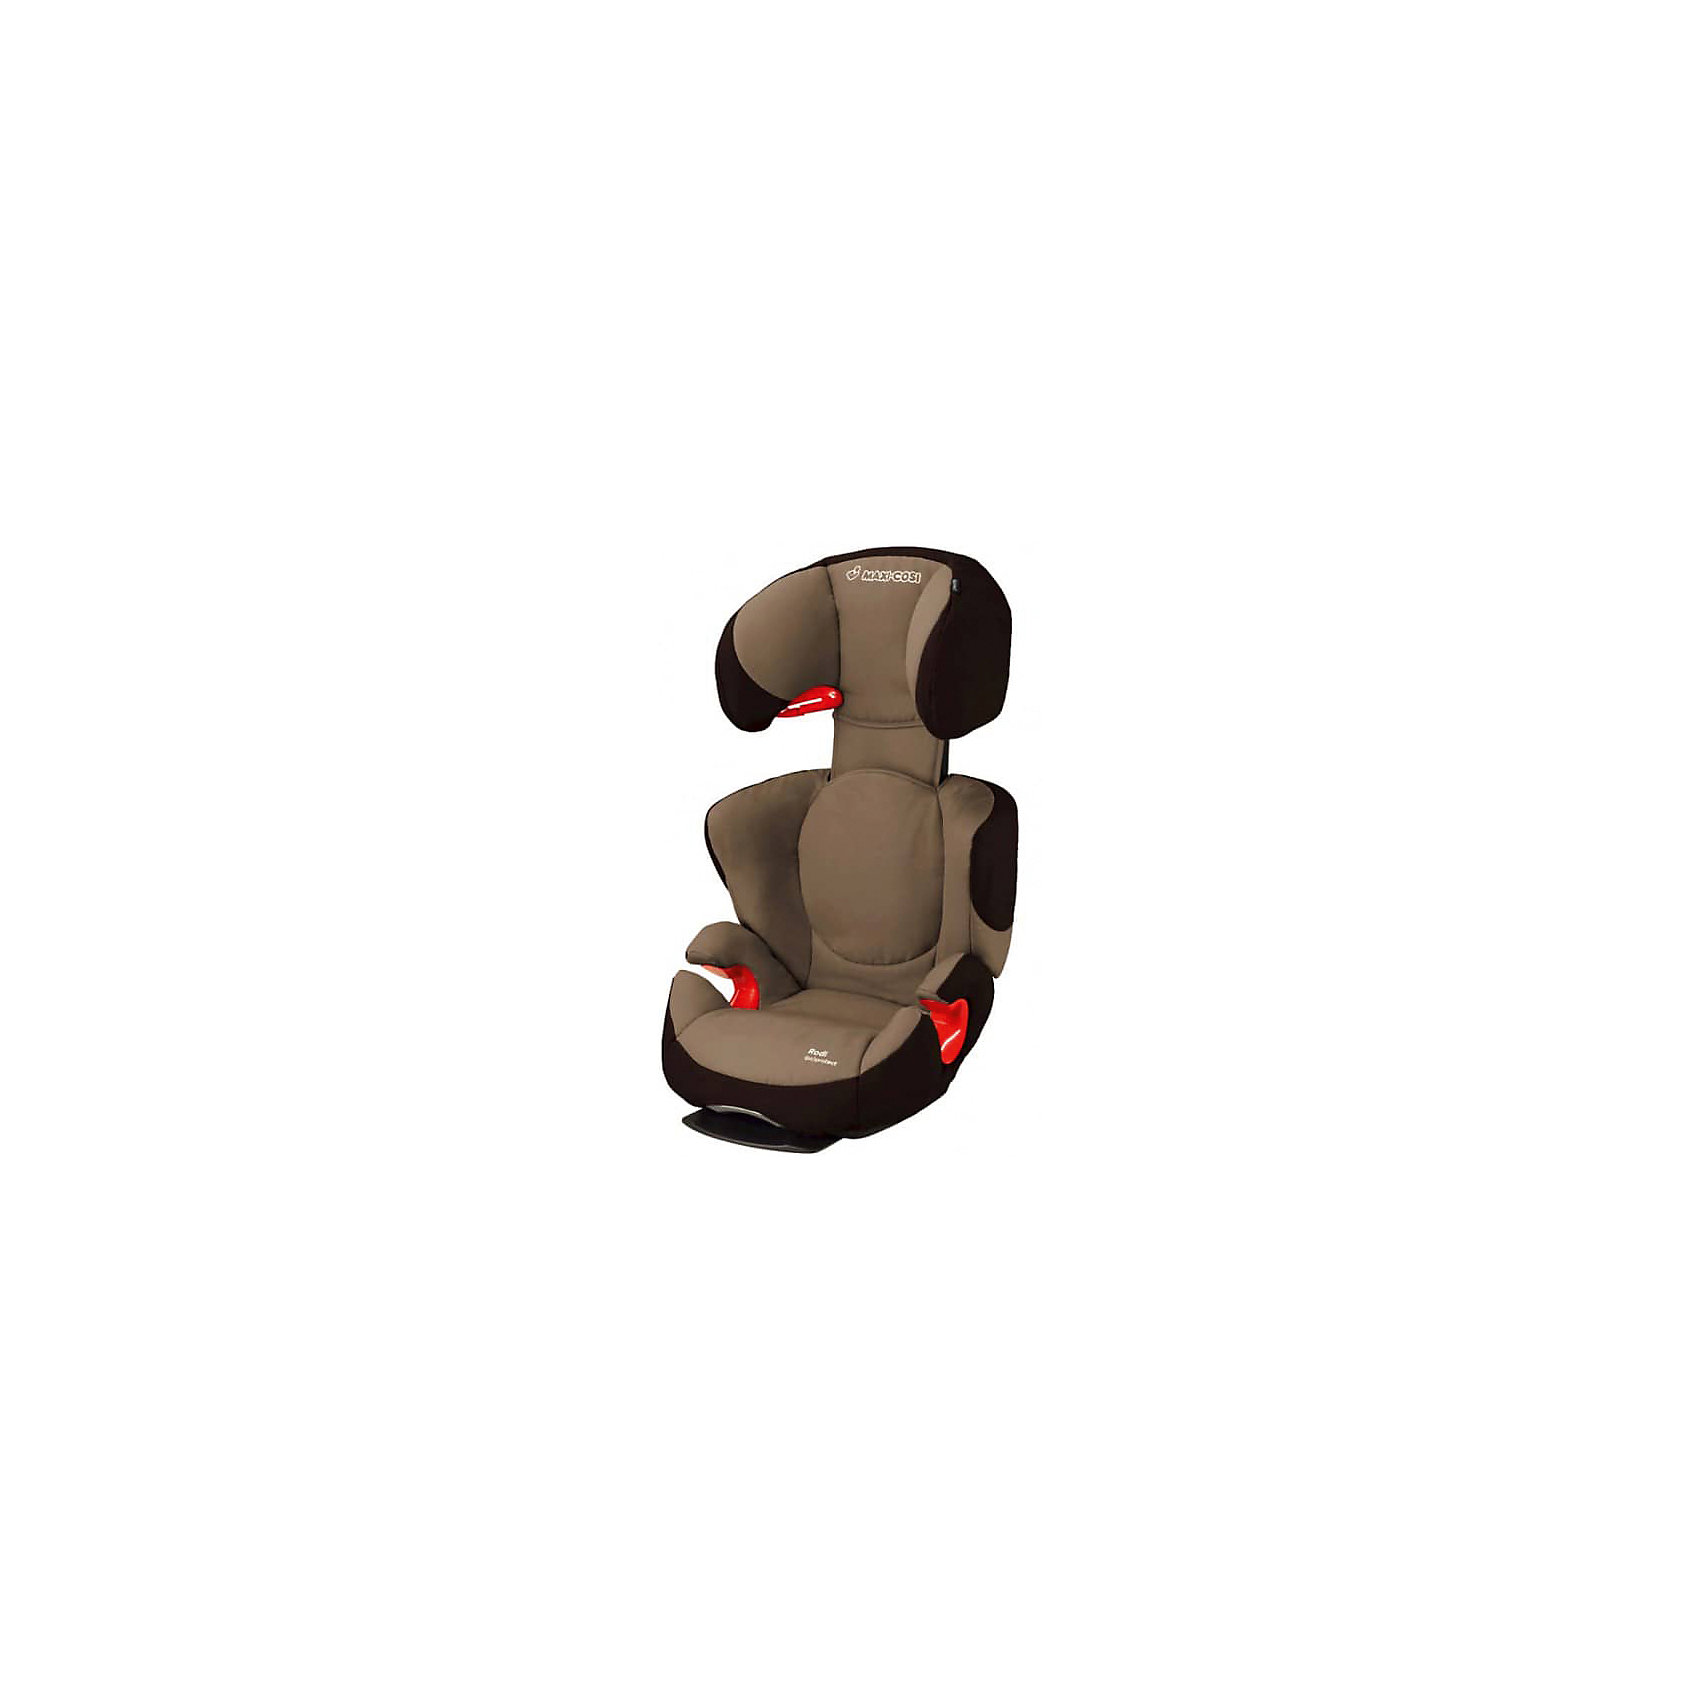 Автокресло Maxi-Cosi Rodi Air, 15-36 кг, Maxi Cosi, Earth brown